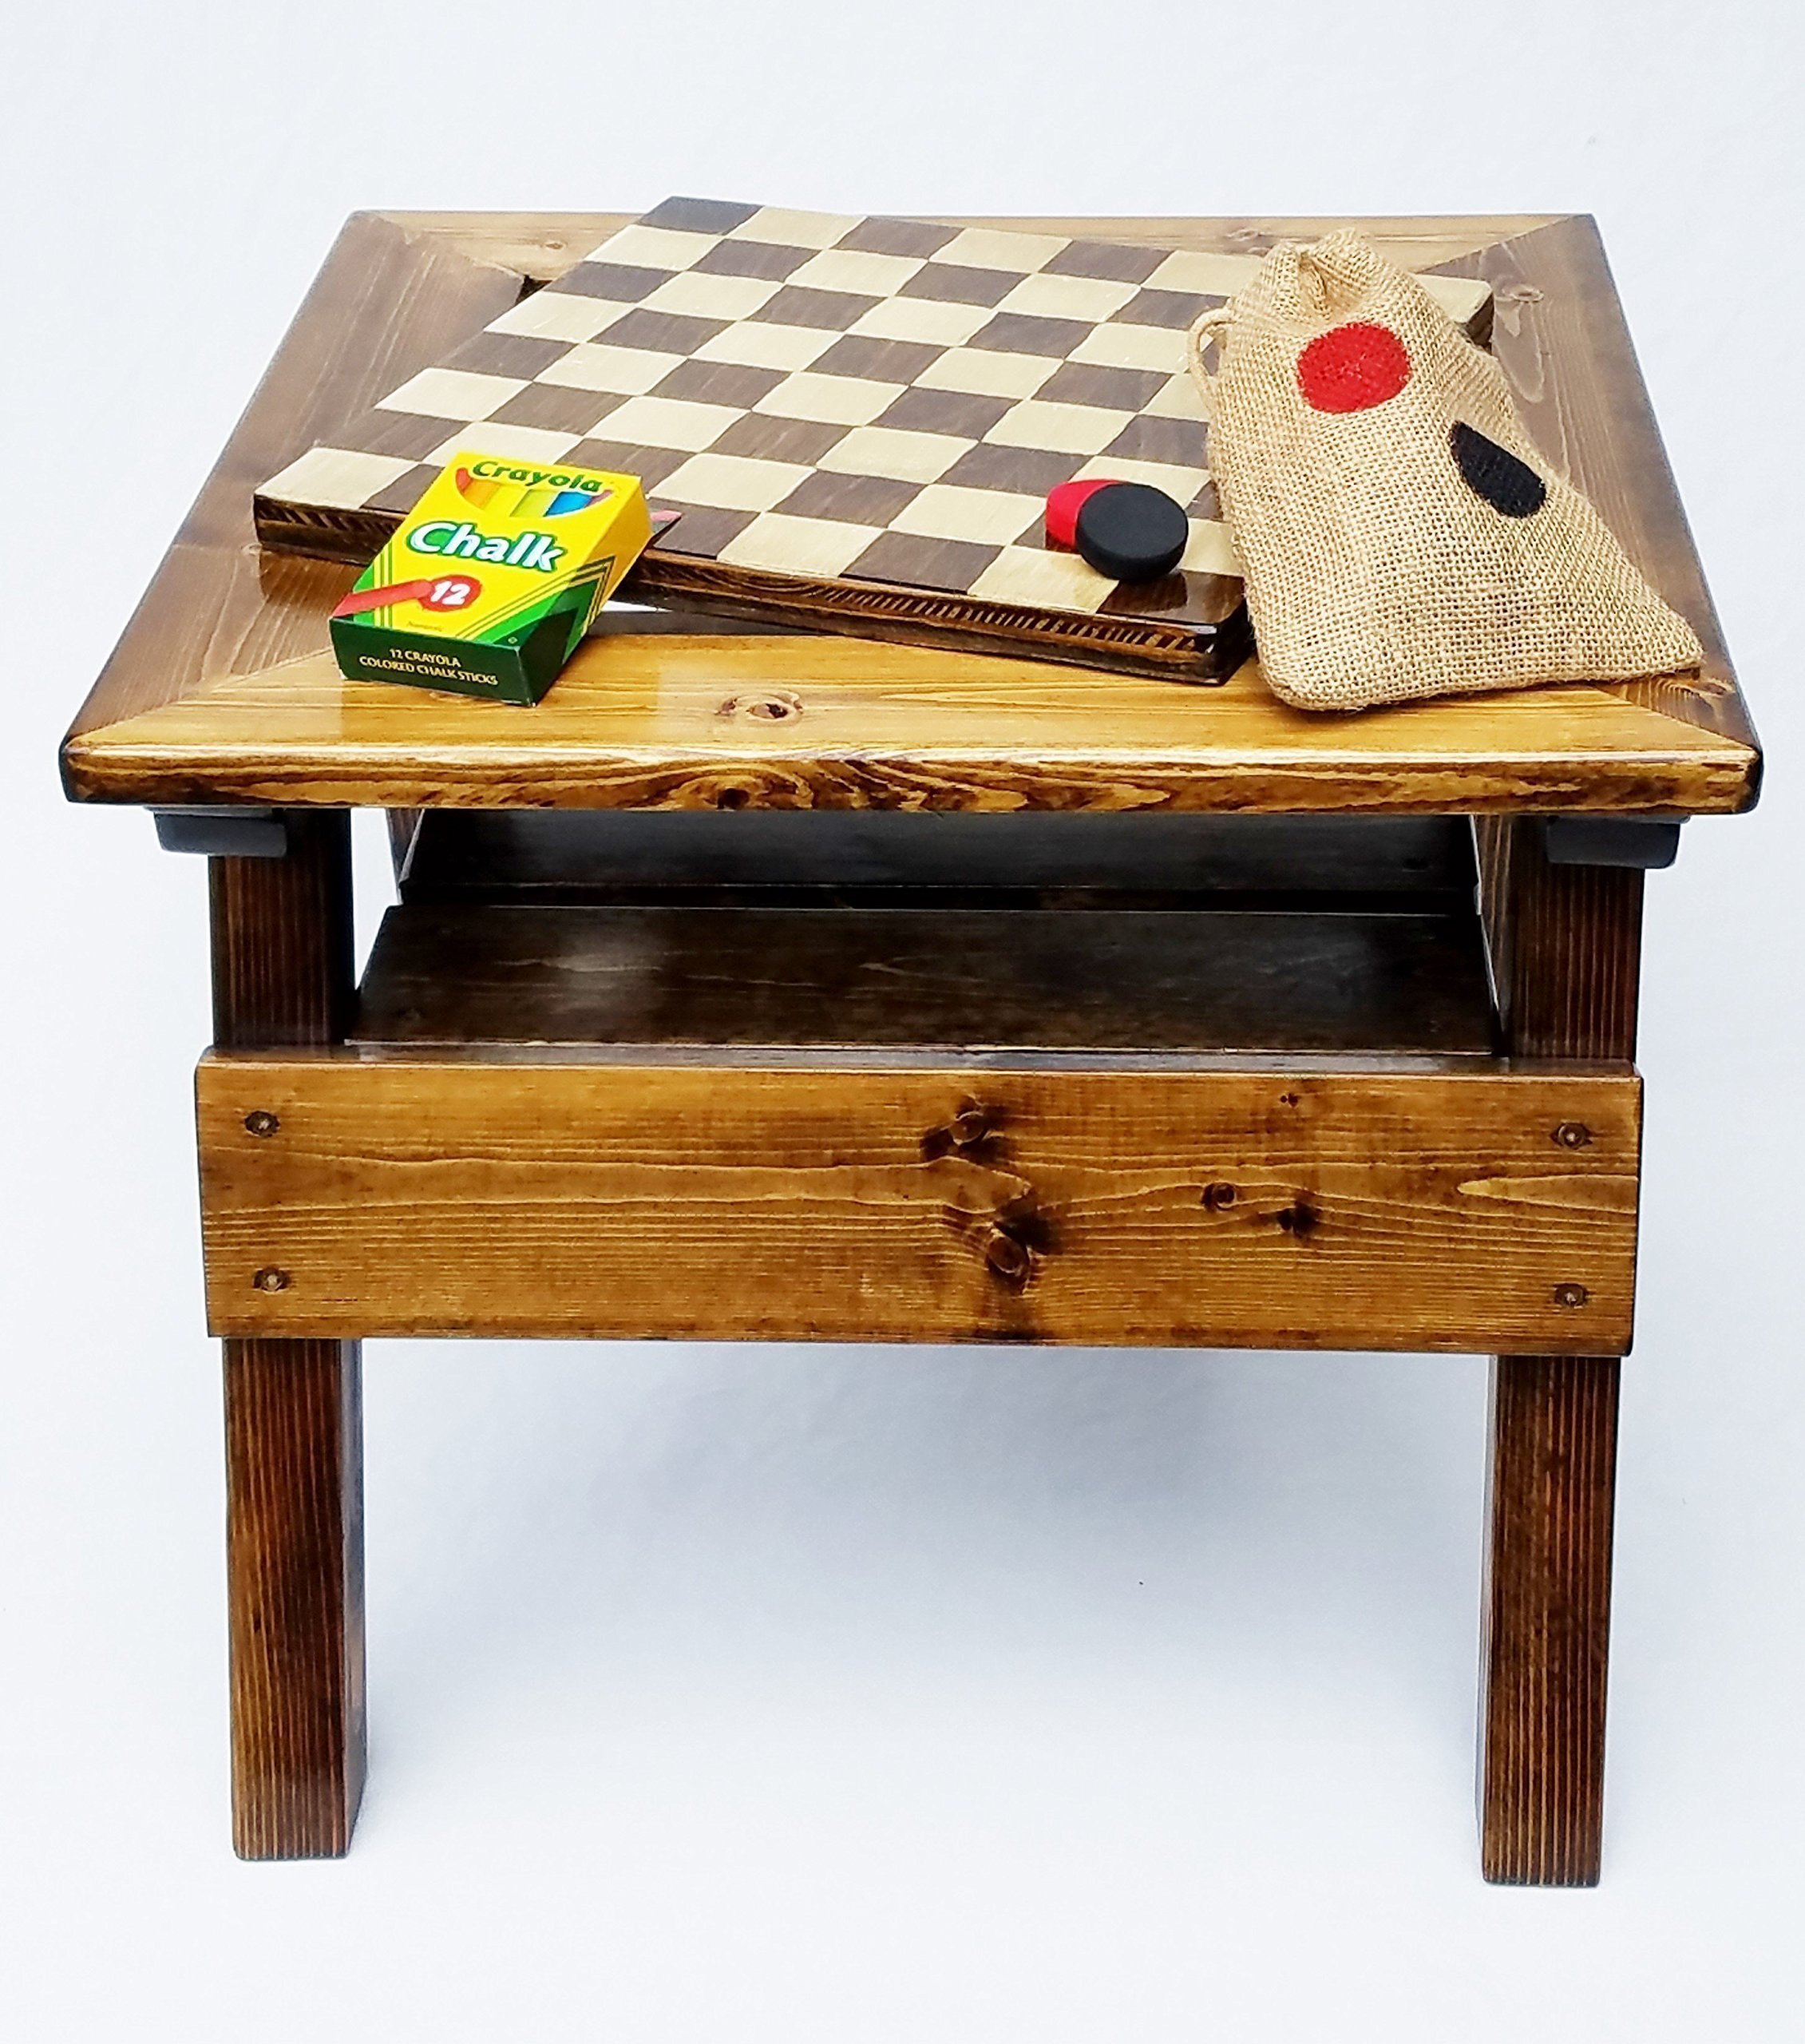 Kids Checkers and Chalkboard, 2-sided game board, Solid Wooden Game and Activity Table, Indoor / Outdoor